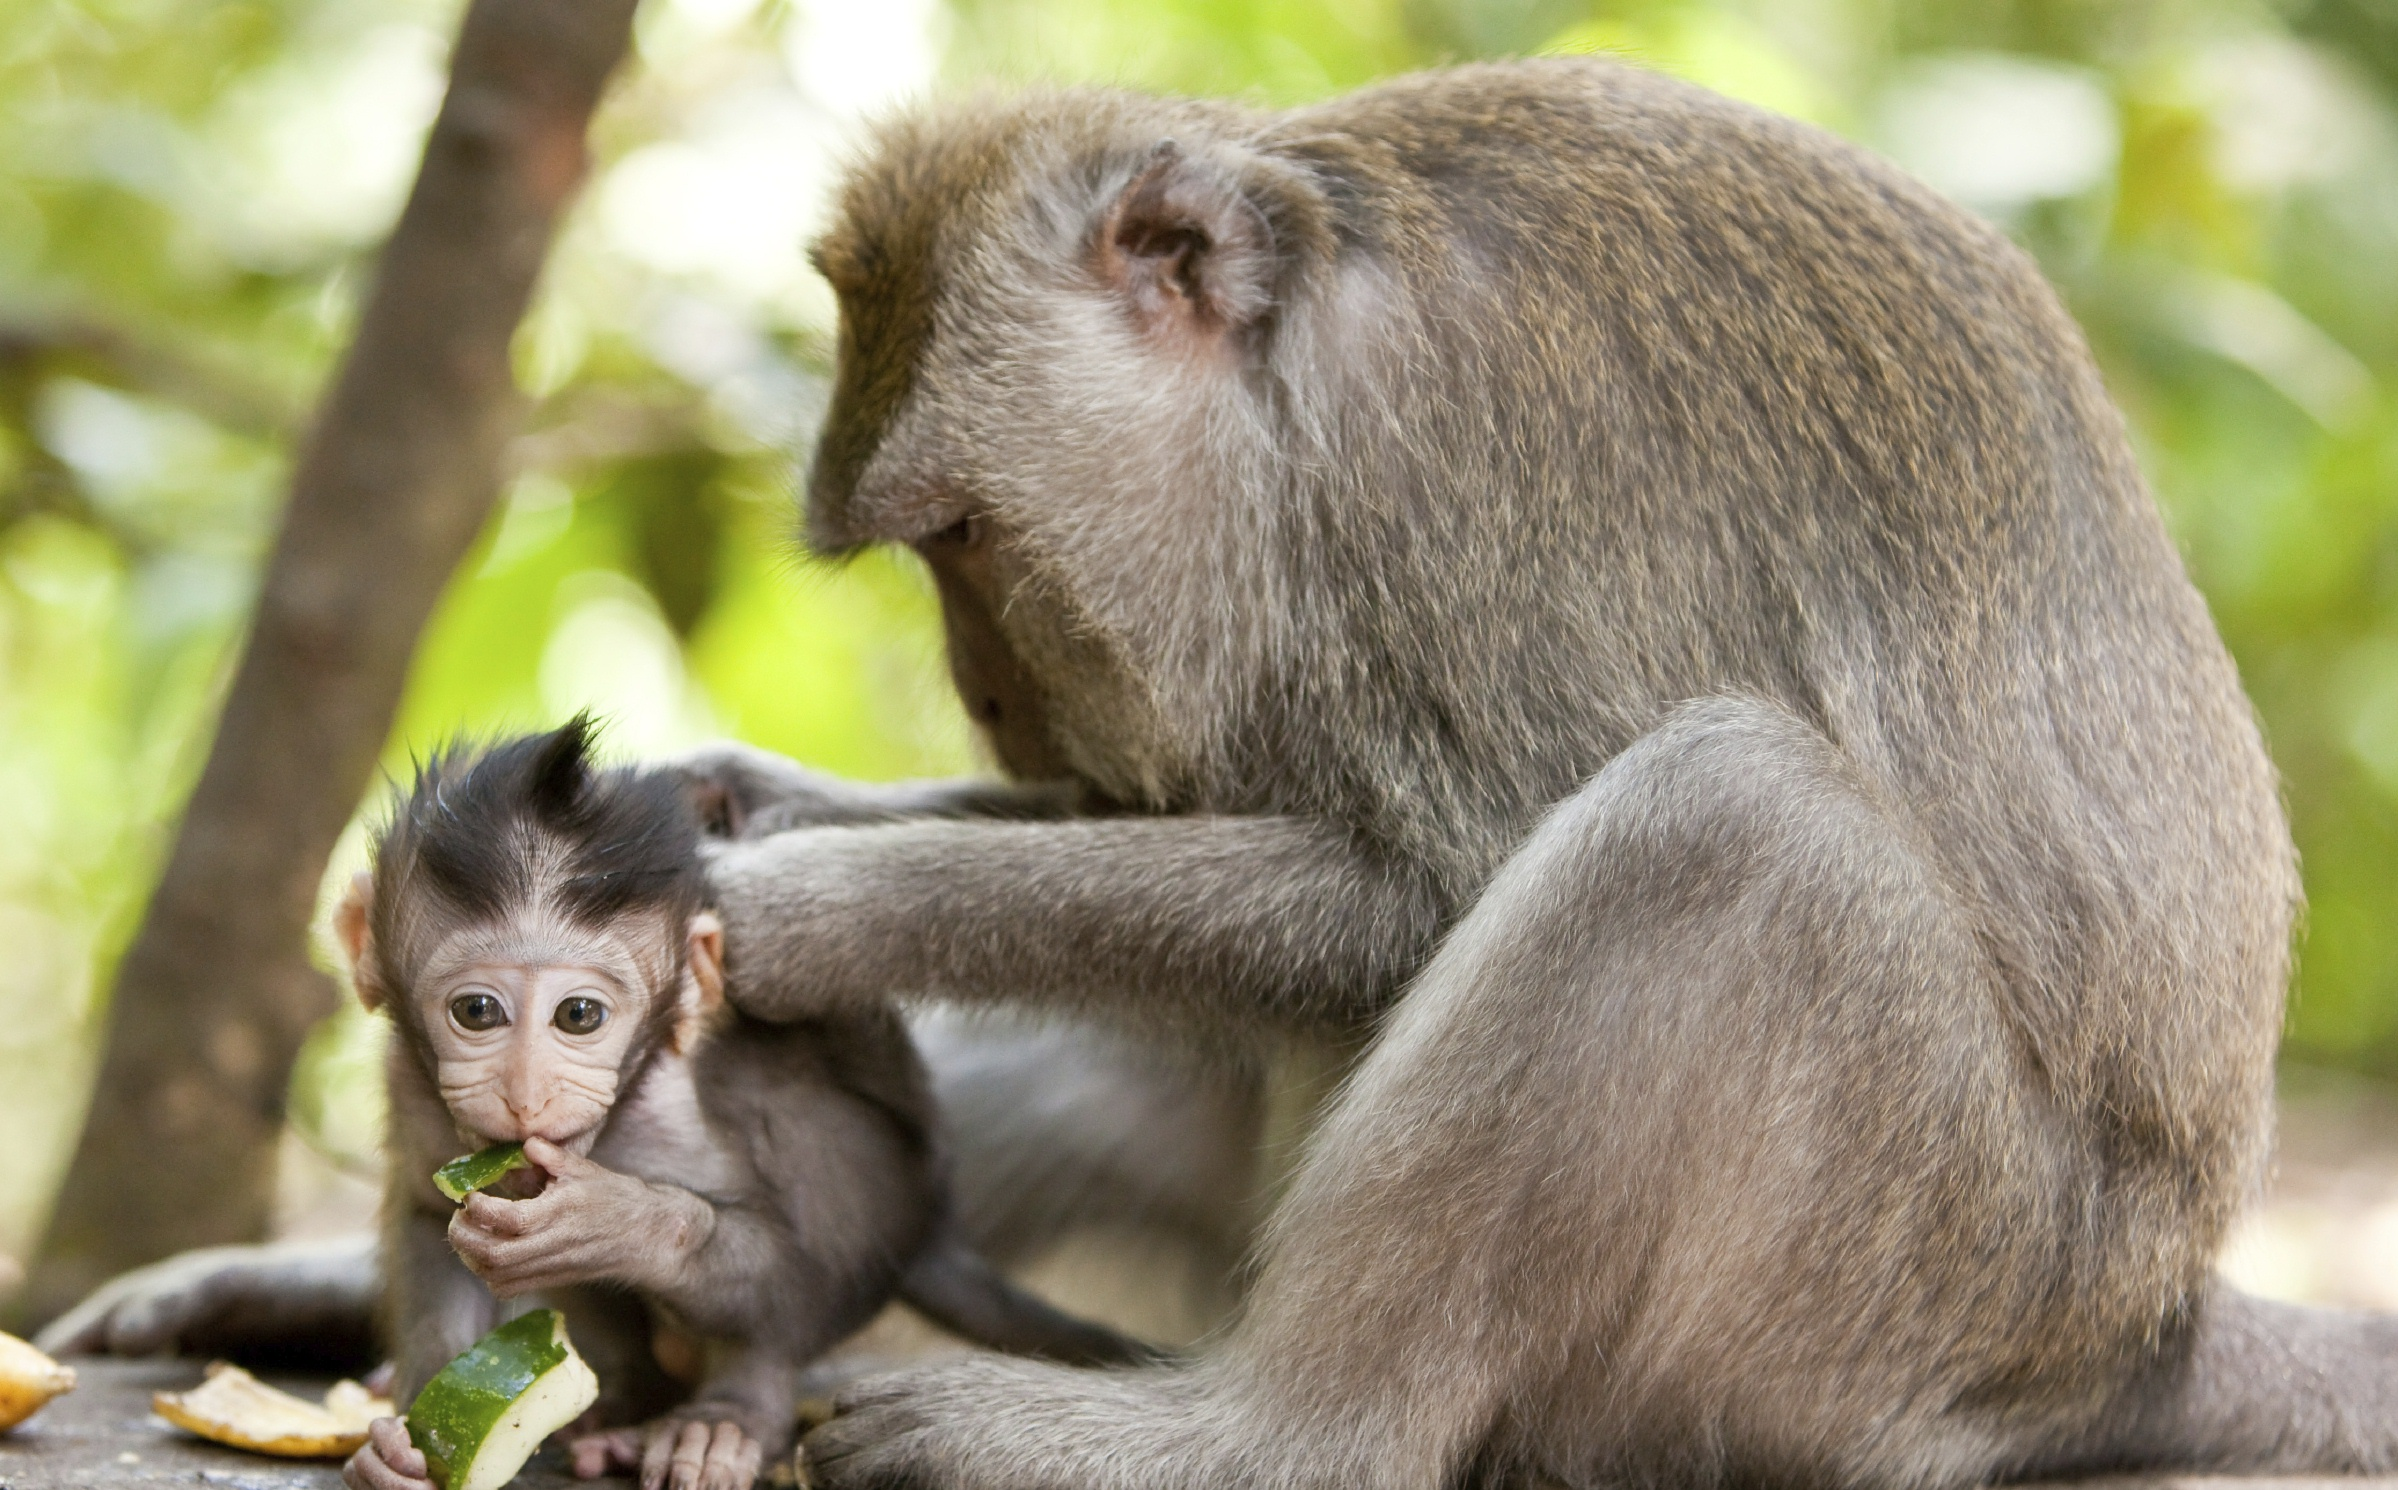 monkey_baby_w_mom_cropped.jpg